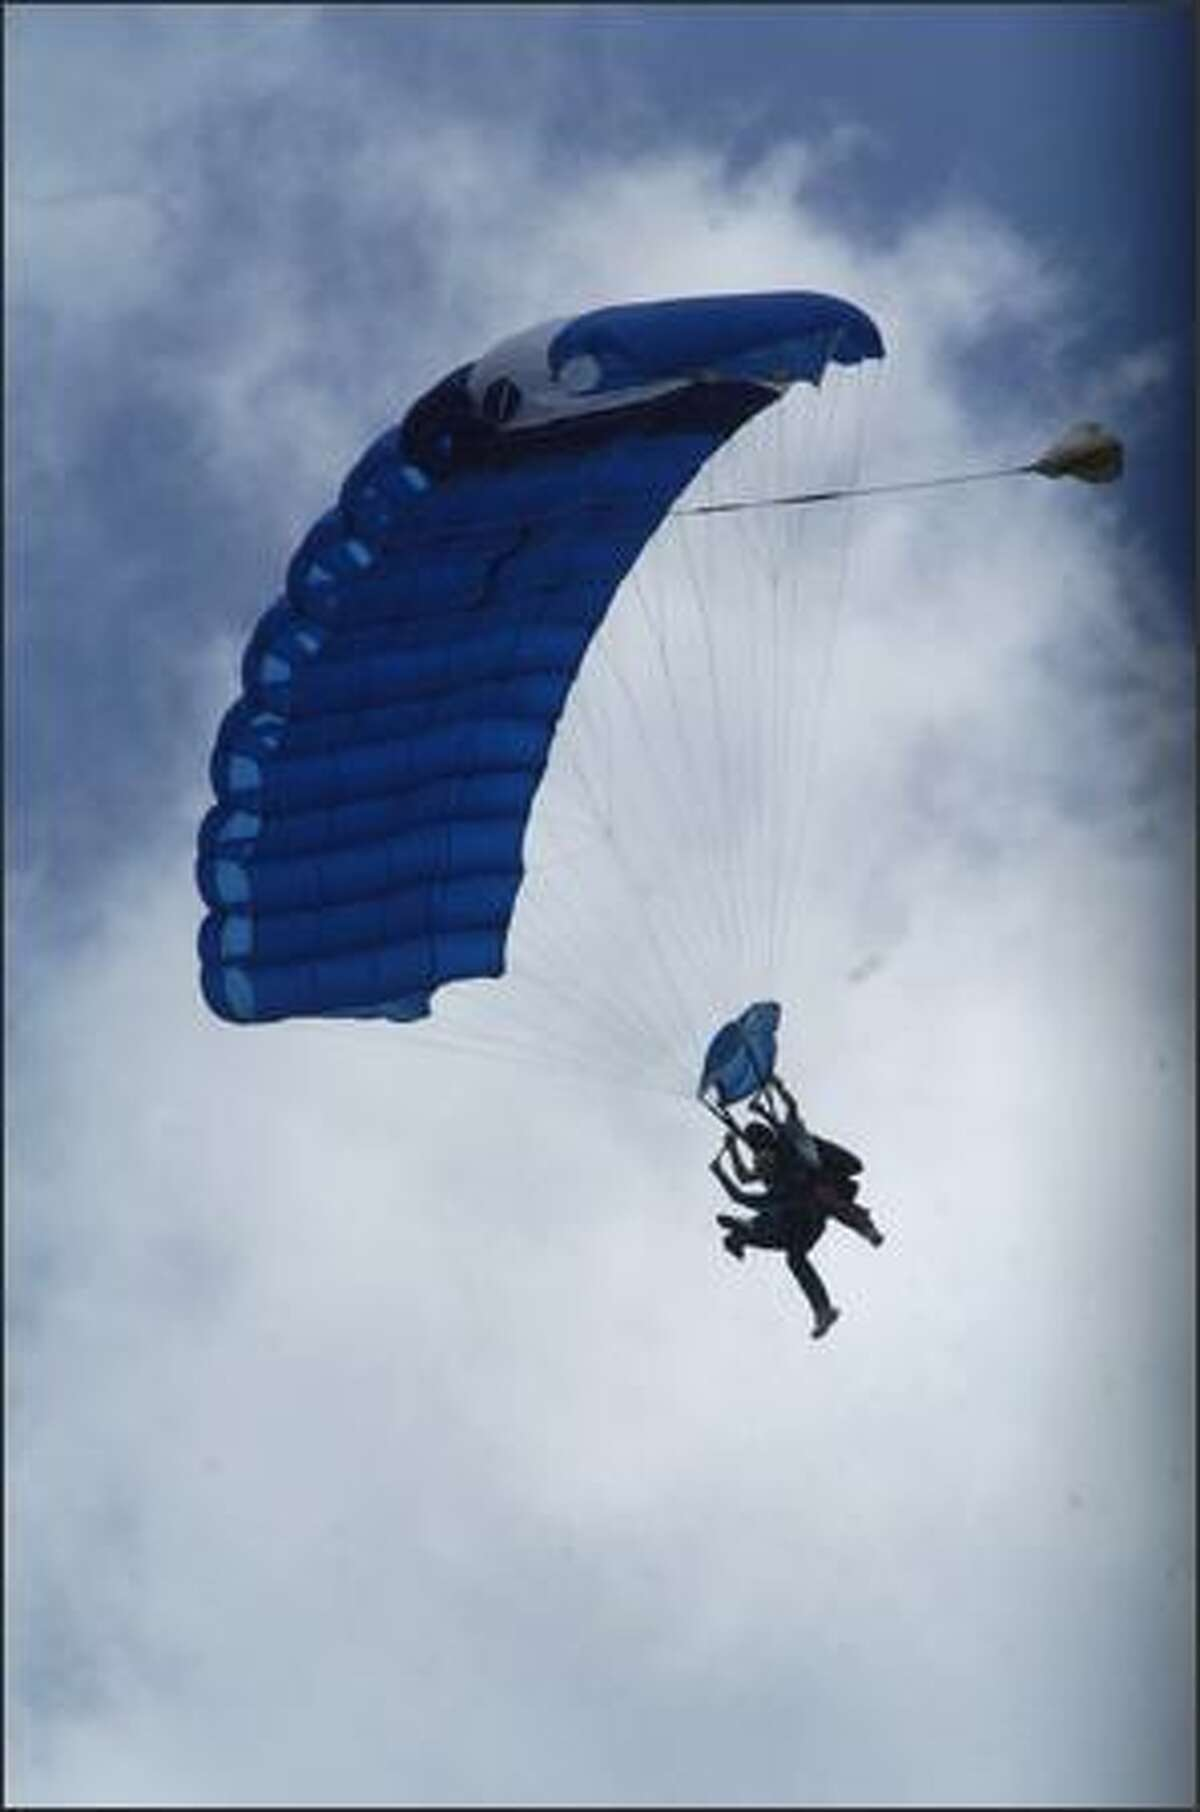 Fred Winter, an 89 year-old World War II veteran from Houston, makes his descent during his first skydive at Skydive Spaceland on Friday in Rosharon, Texas. Winter, whose leg was amputated during to a hunting accident, said: